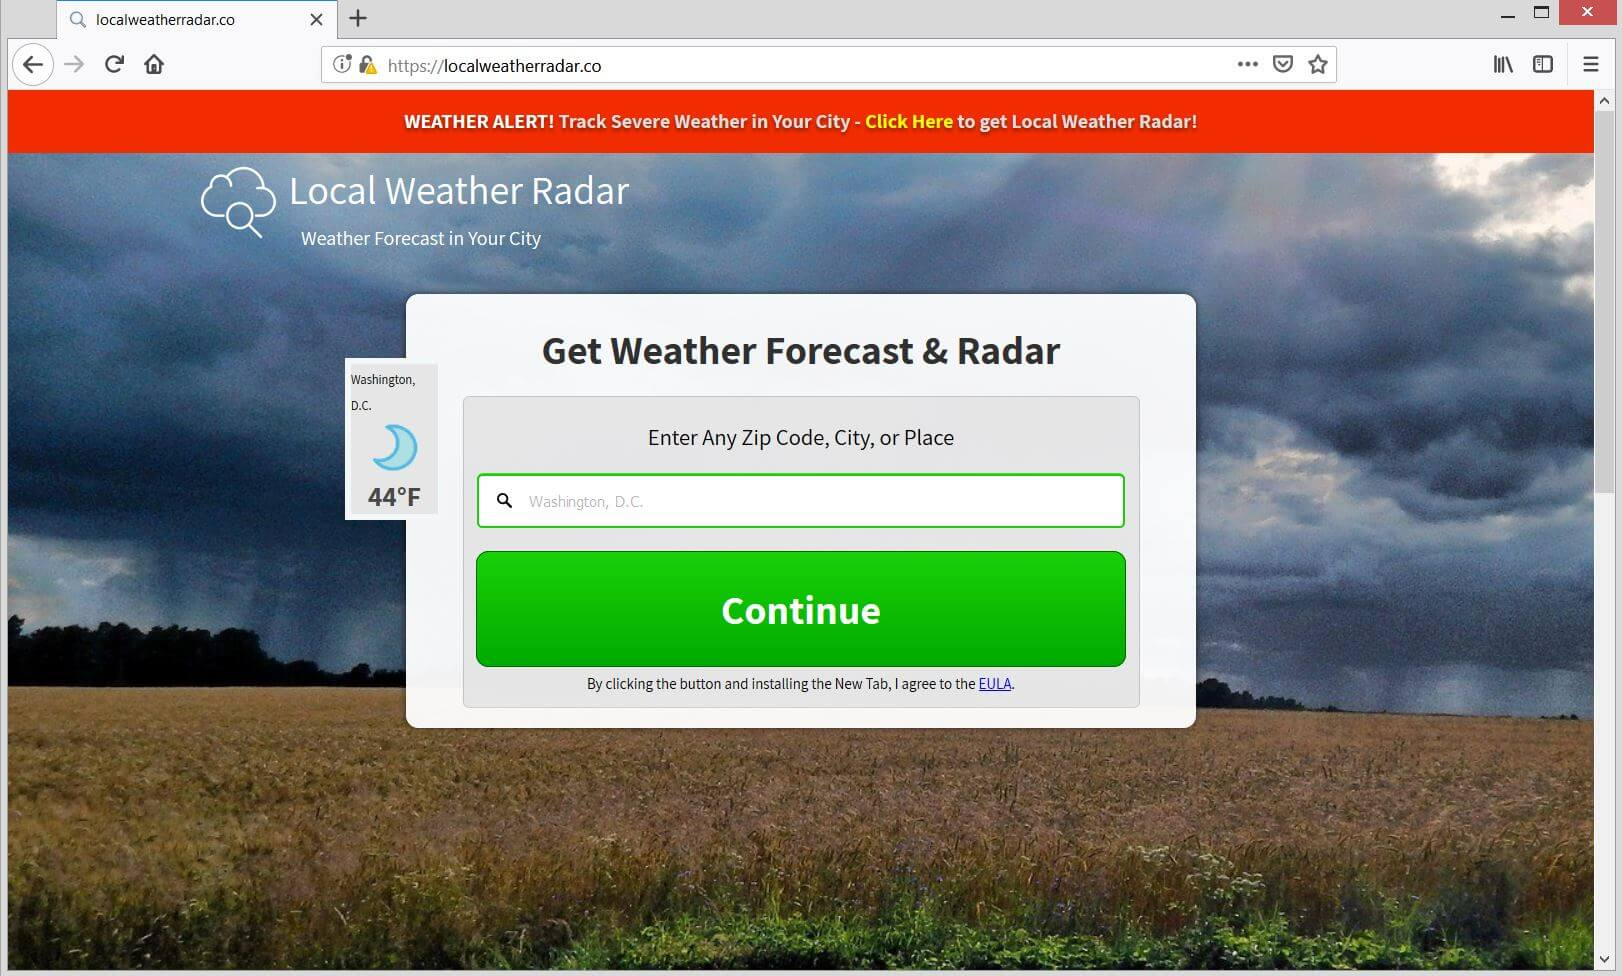 localweatherradar.co official website